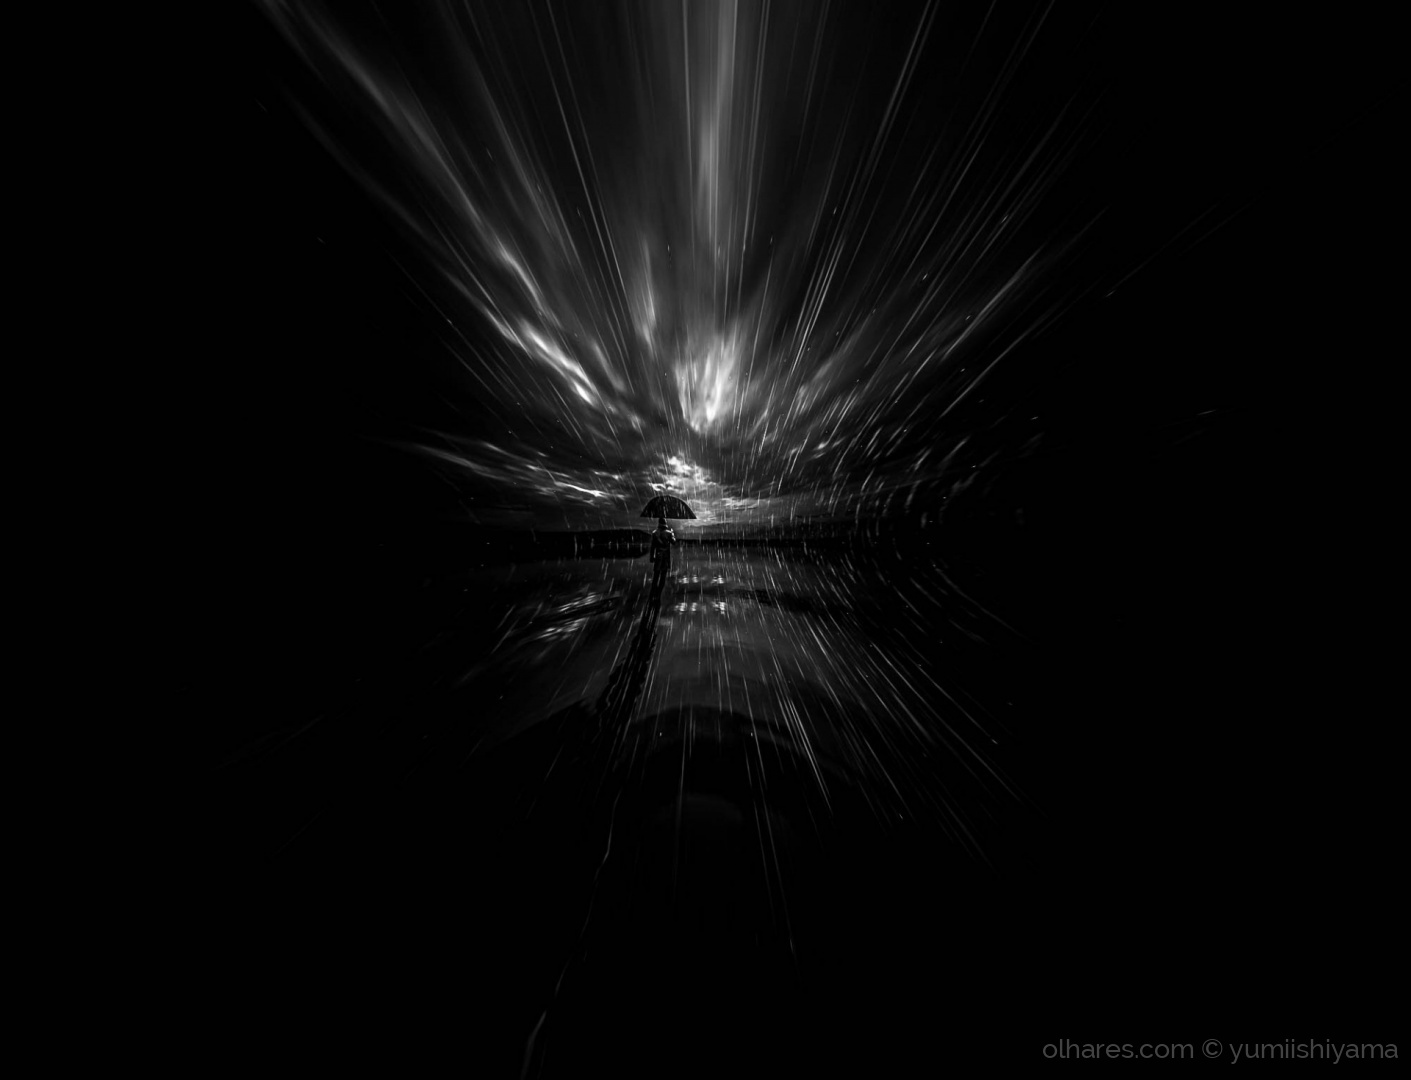 Abstrato/Darkness